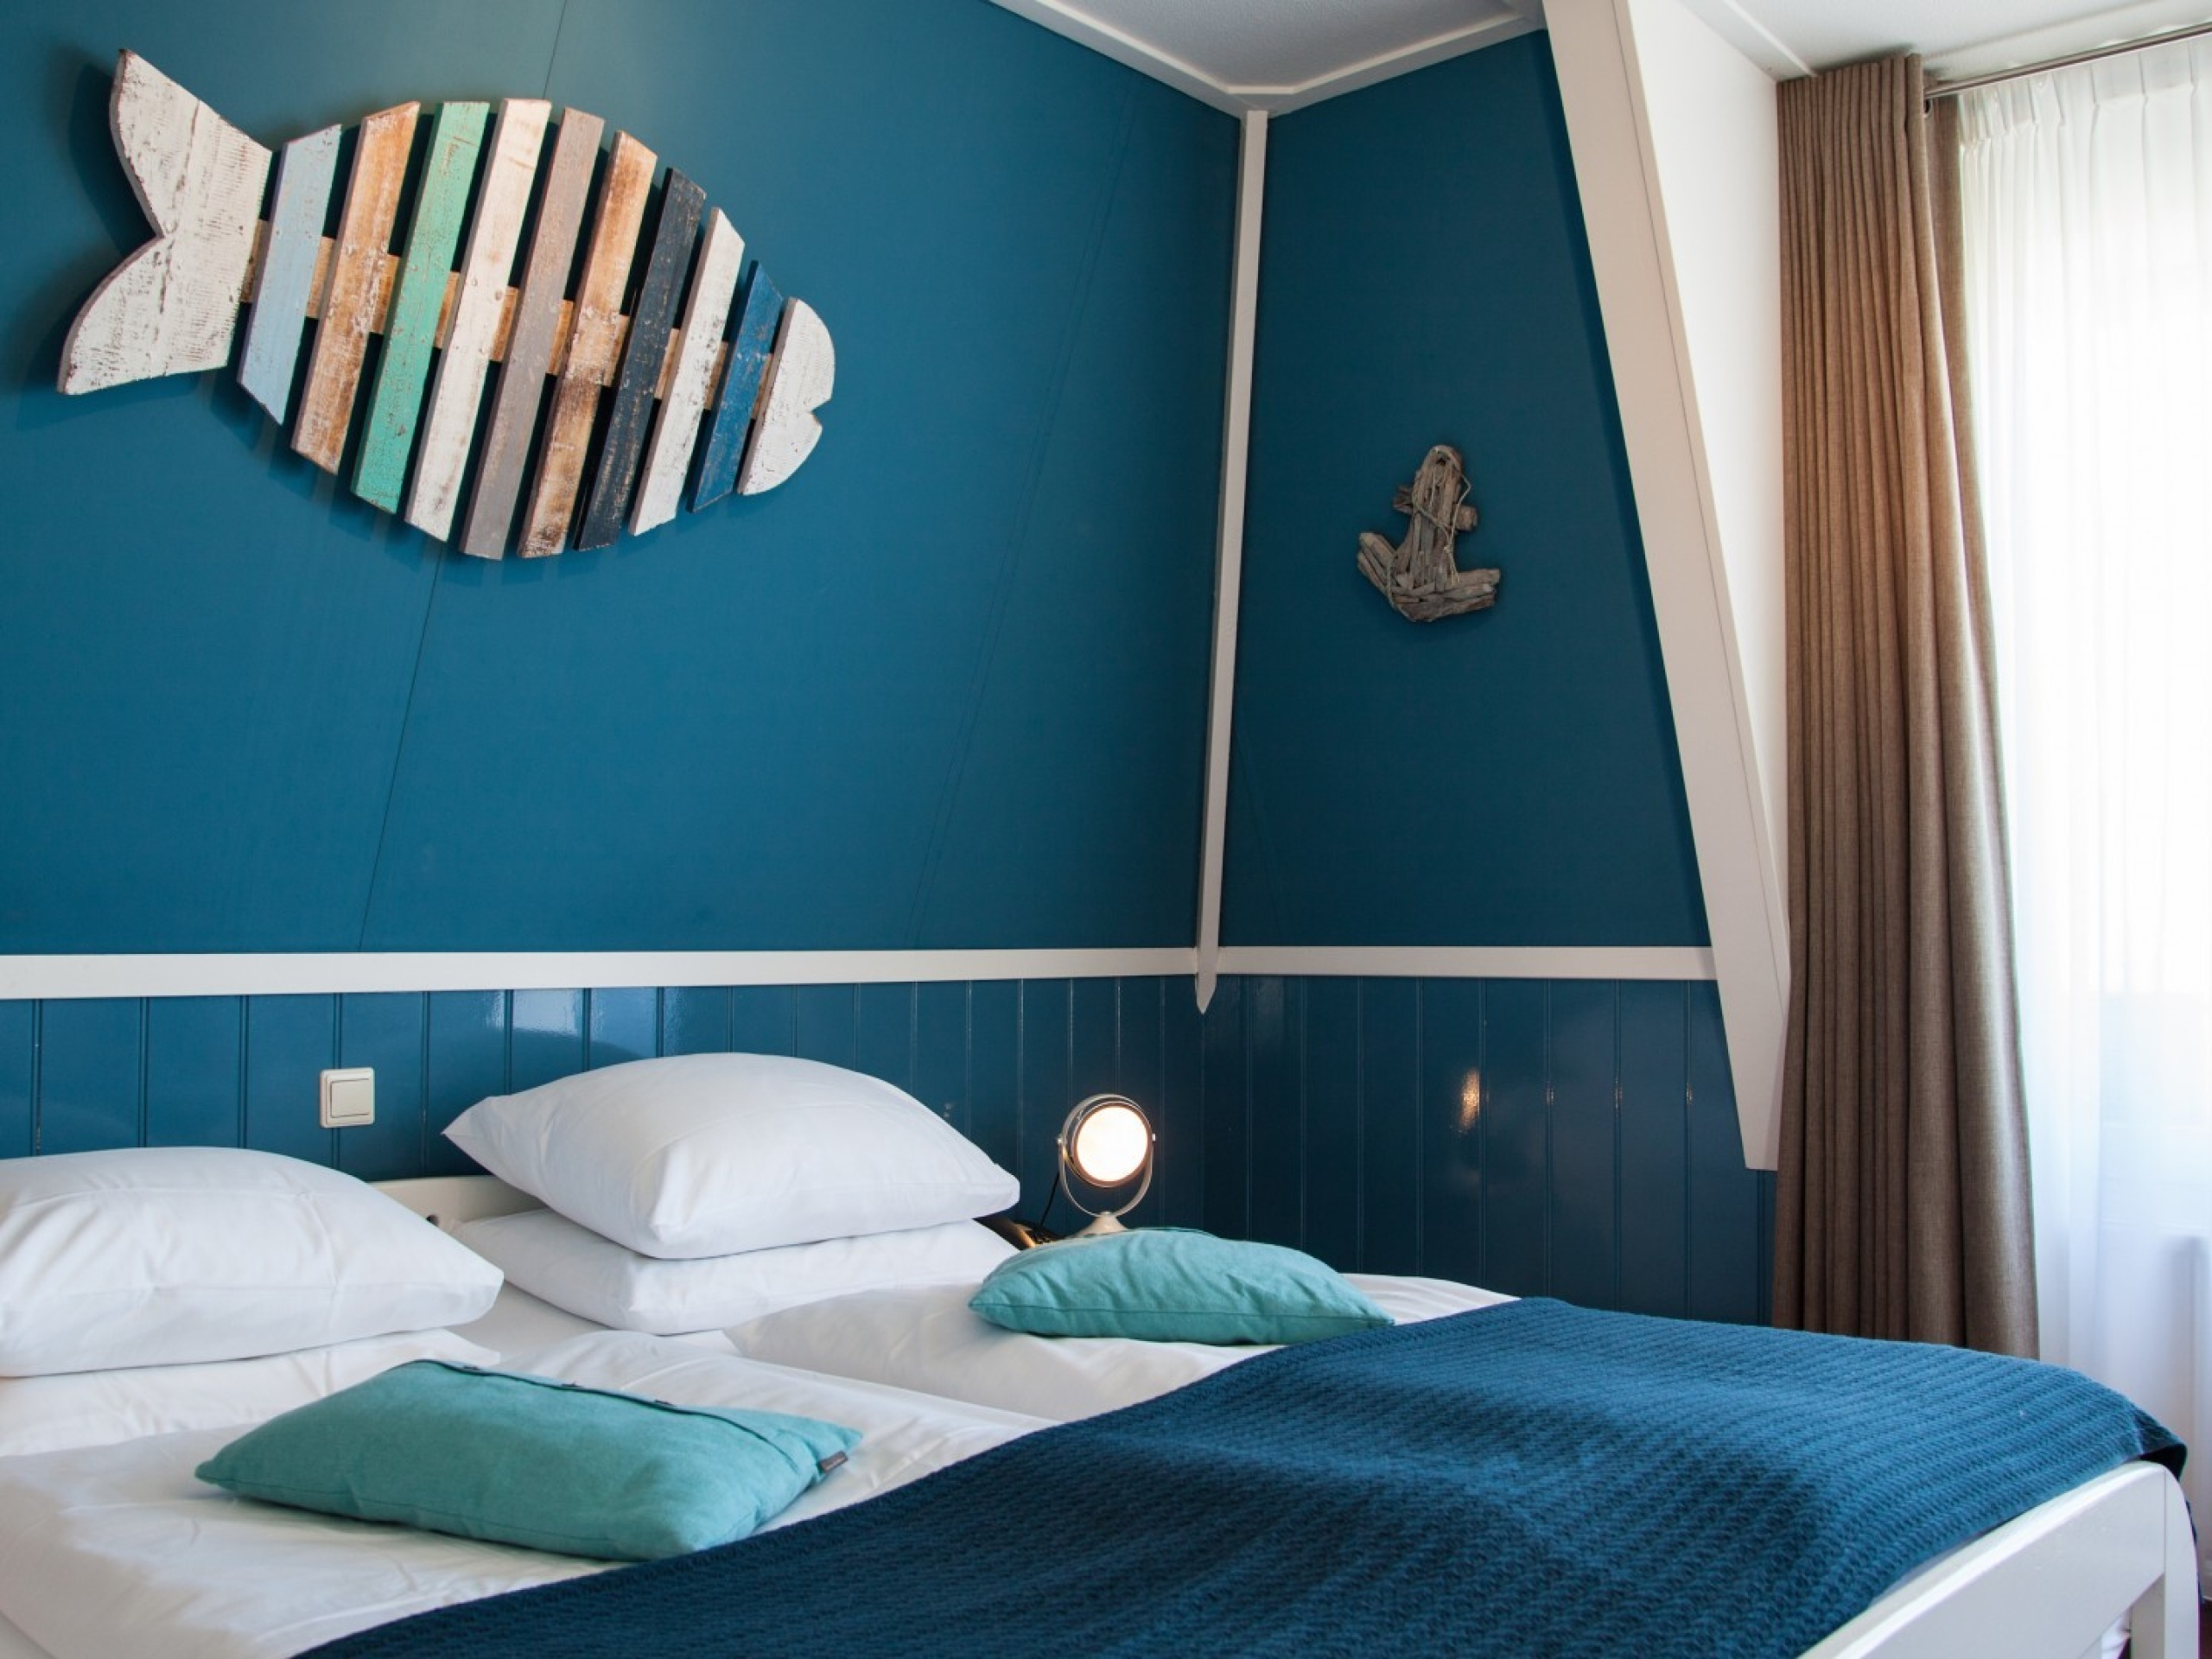 Hotel with luxurious rooms with views overlooking the North Sea in De Koog